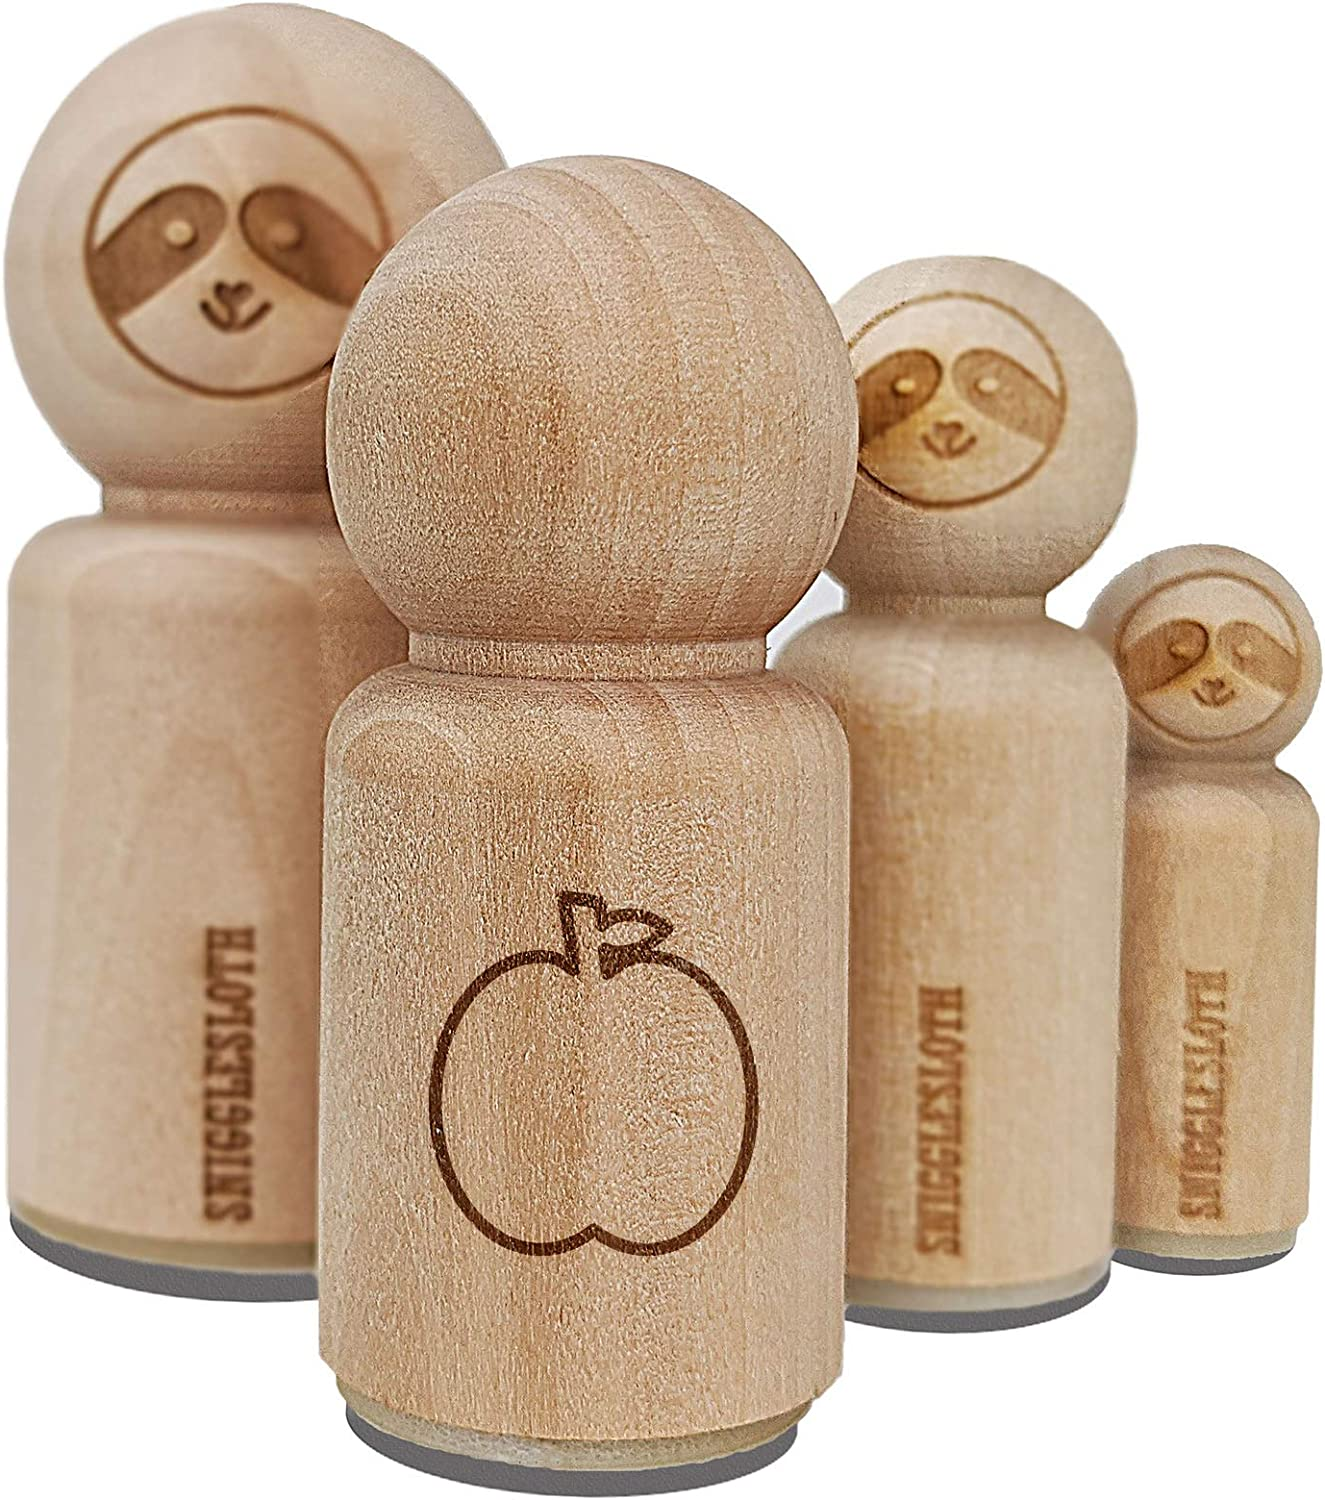 Apple Fruit Outline Rubber Stamp for Stamping Crafting Planners - 3/4 Inch Small